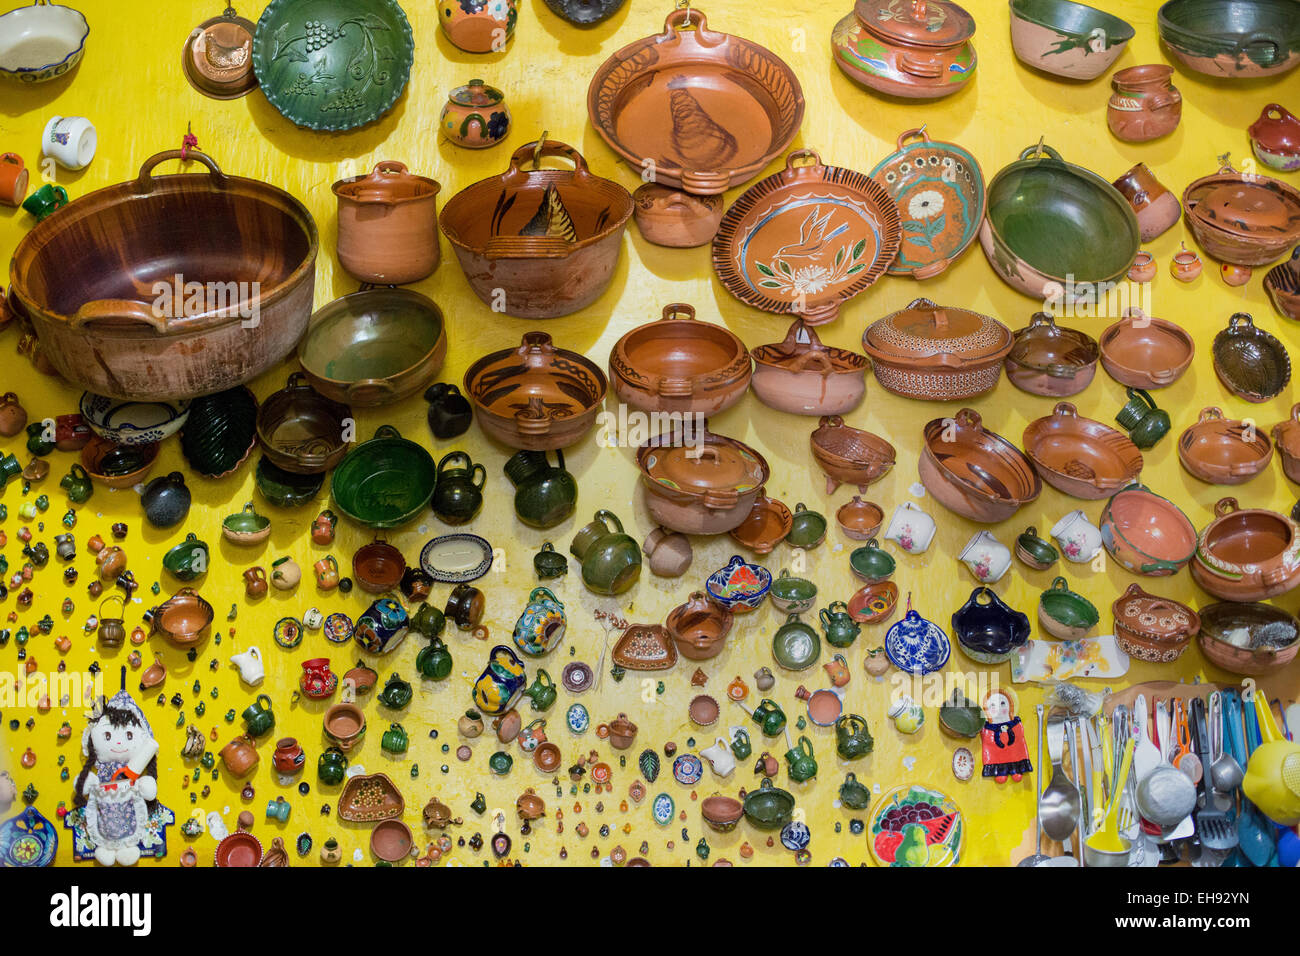 Ocotlán de Morelos, Oaxaca, Mexico - Pottery hanging on the kitchen wall at the home and studio of painter - Stock Image